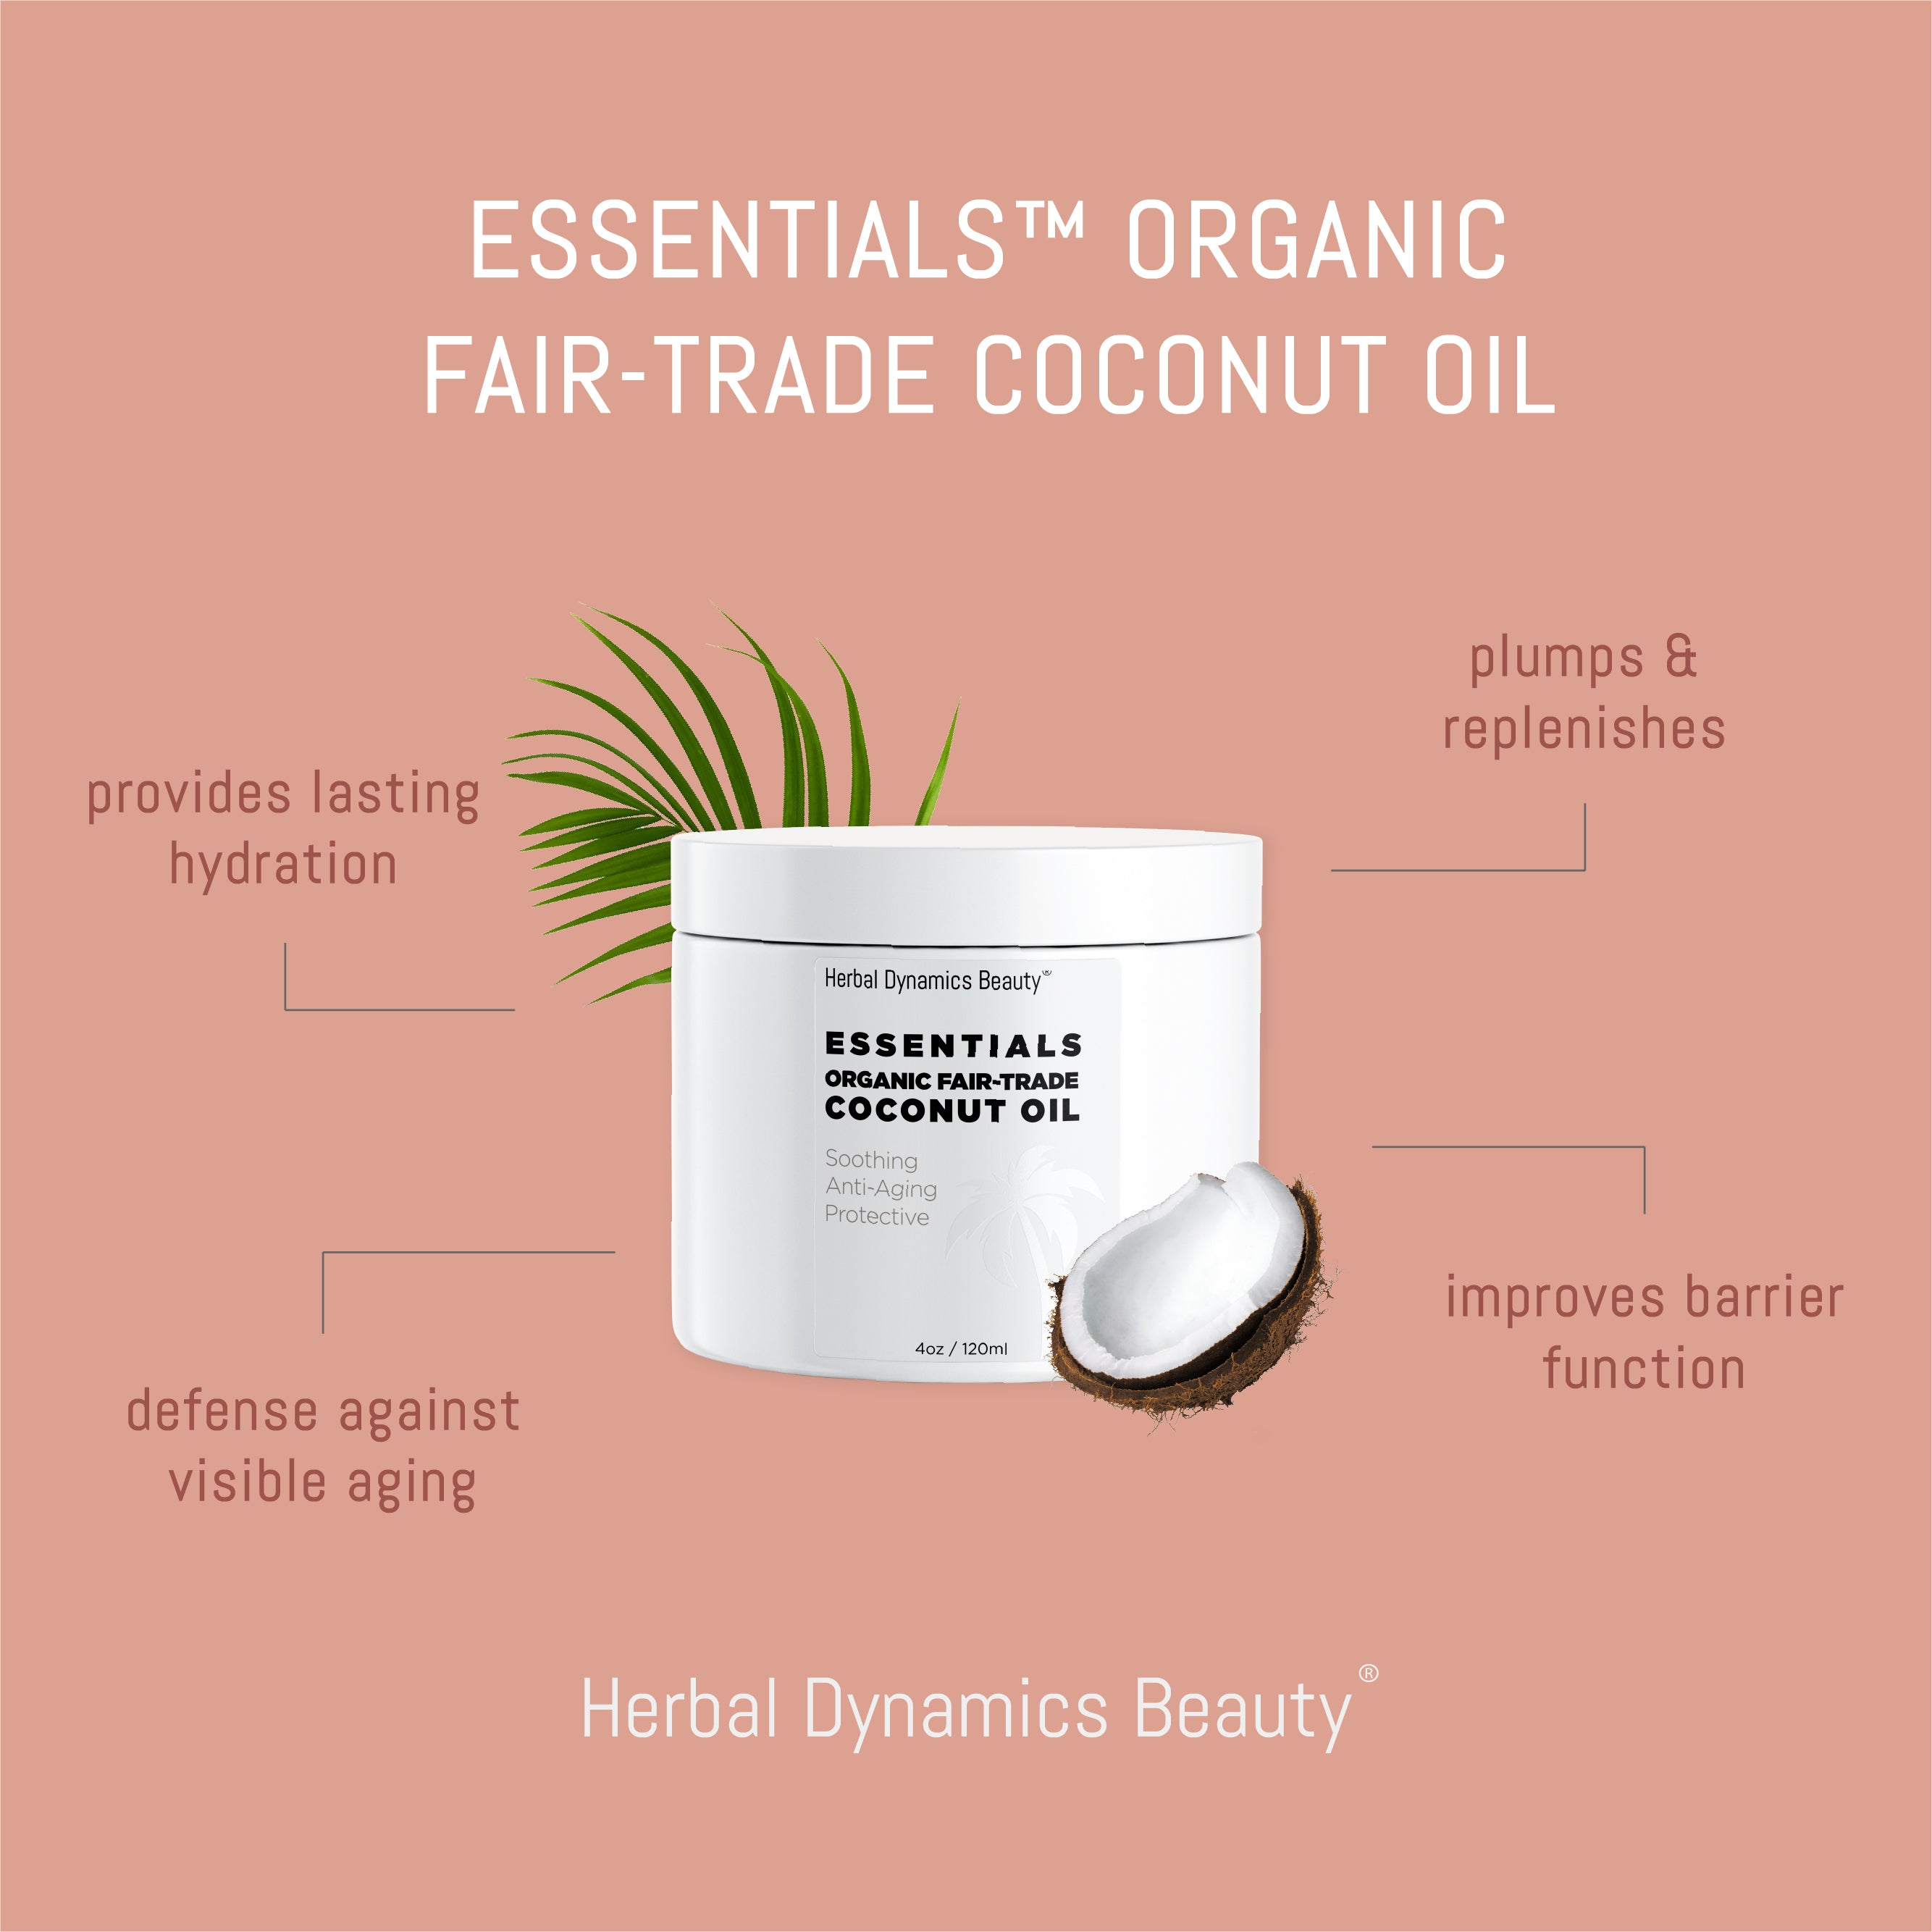 Essentials™ Organic Fair-Trade Coconut Oil